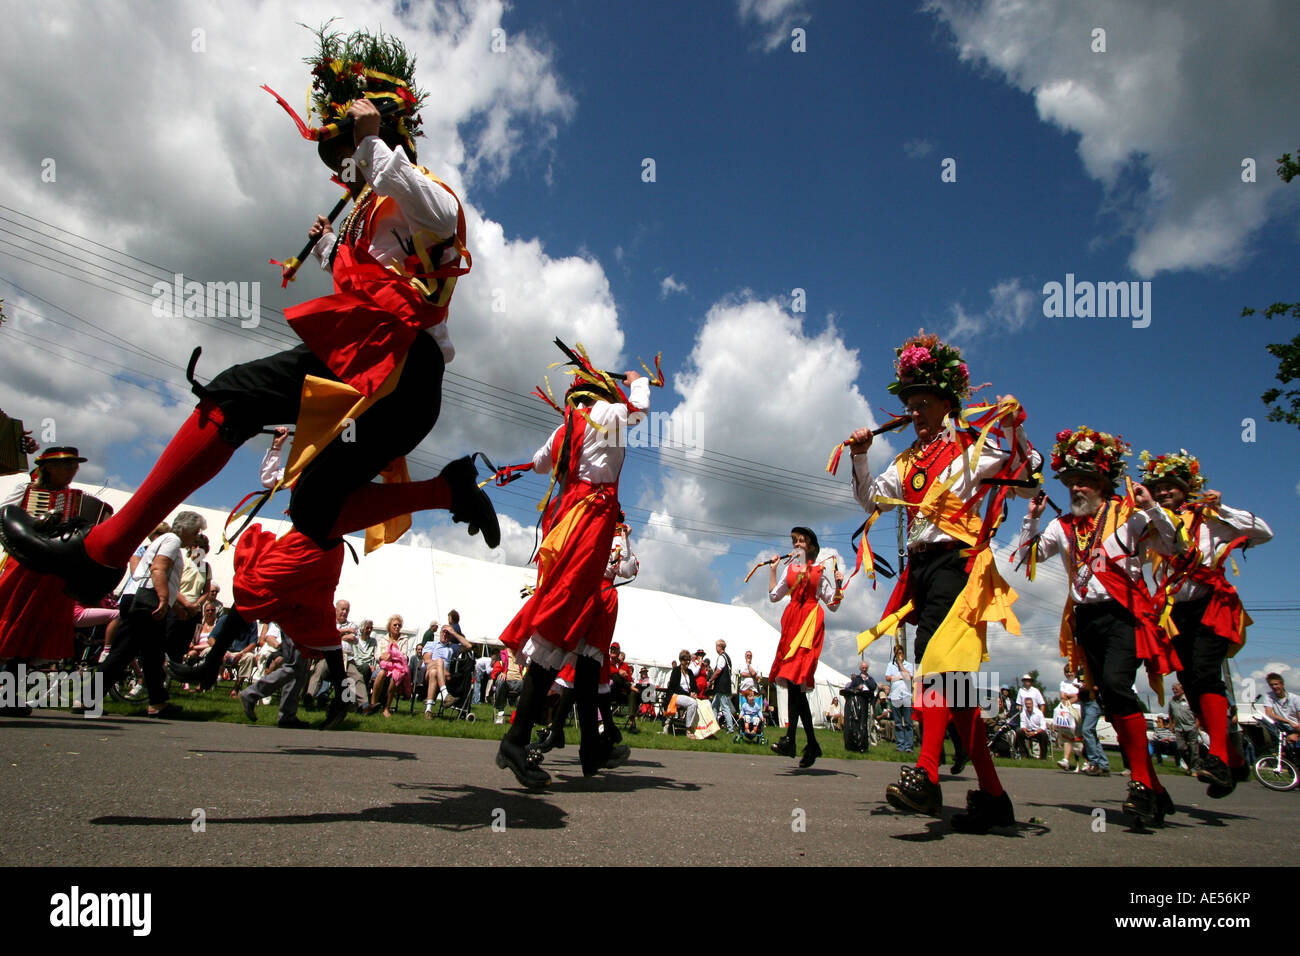 Morris Dancers at the Ardingly Showground, Sussex, England - Stock Image